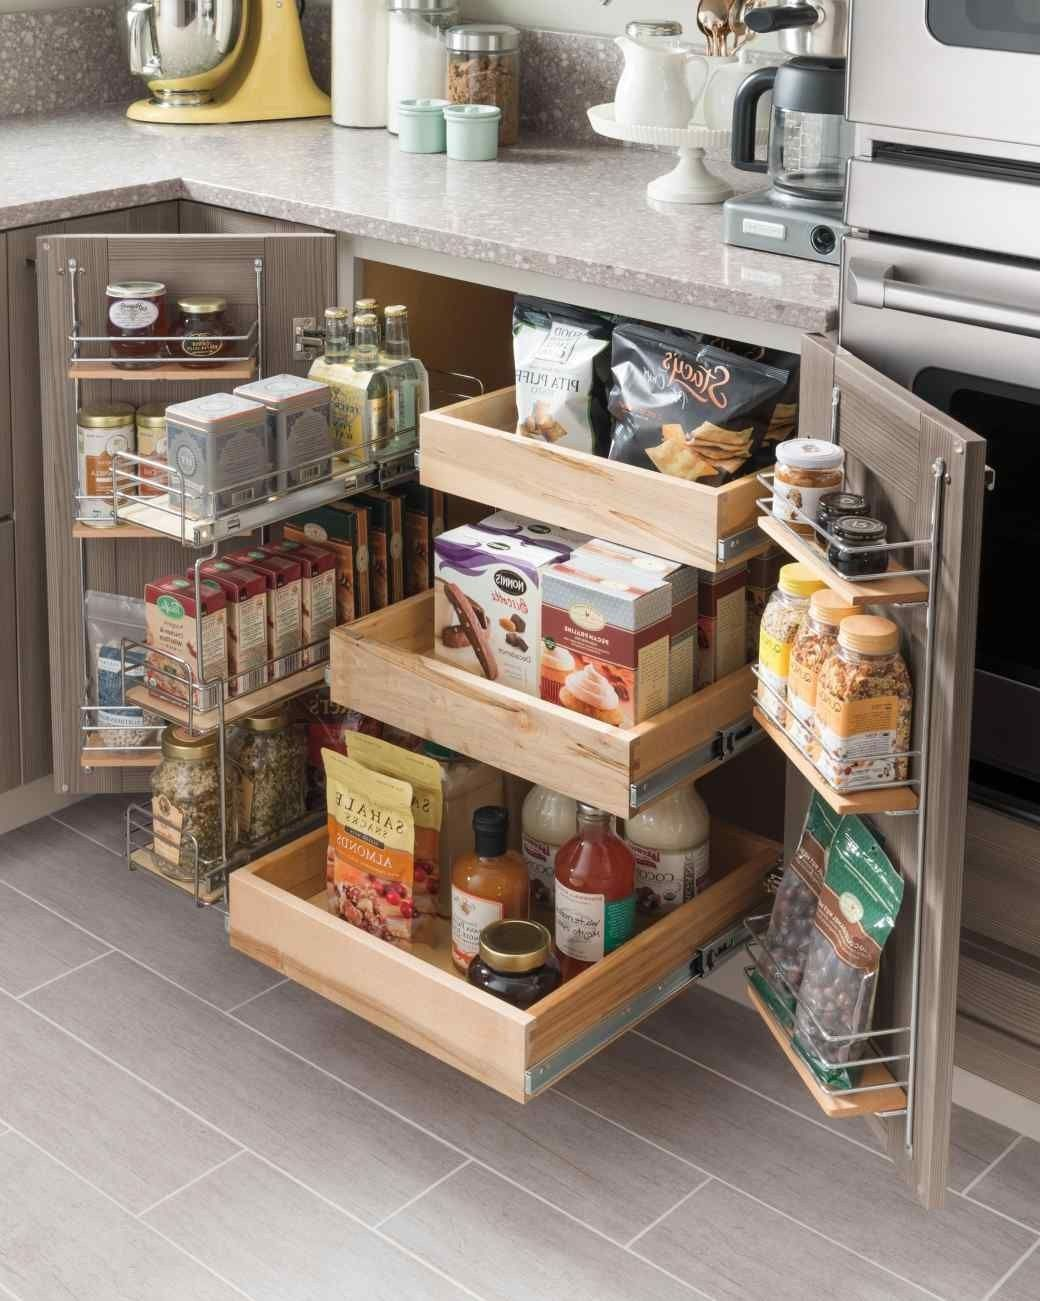 space saving ideas for small kitchens small kitchen storage ideas for a more efficient space on kitchen organization for small spaces id=32317